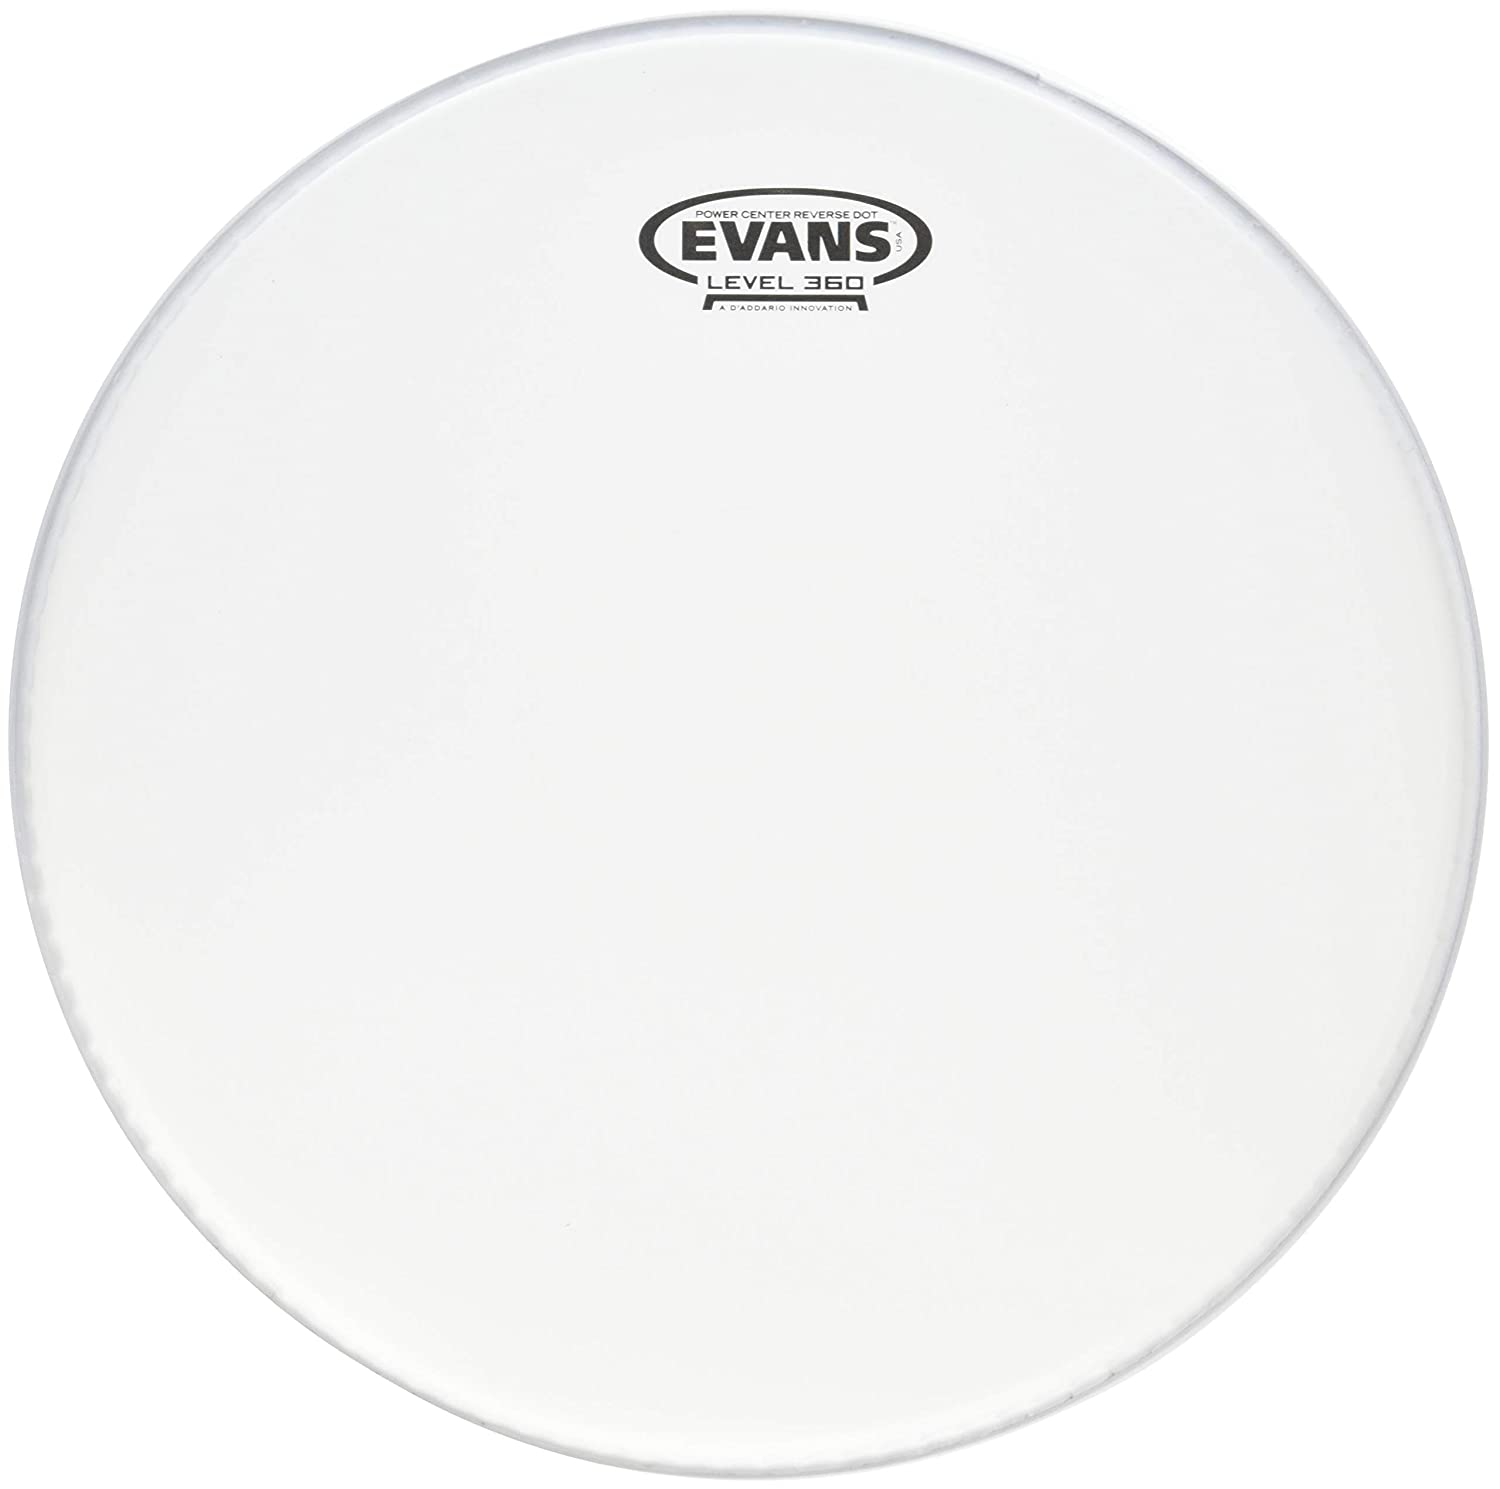 Evans Power Center Reverse Dot Drum Head, 13 Inch - B13G1RD Evans Heads